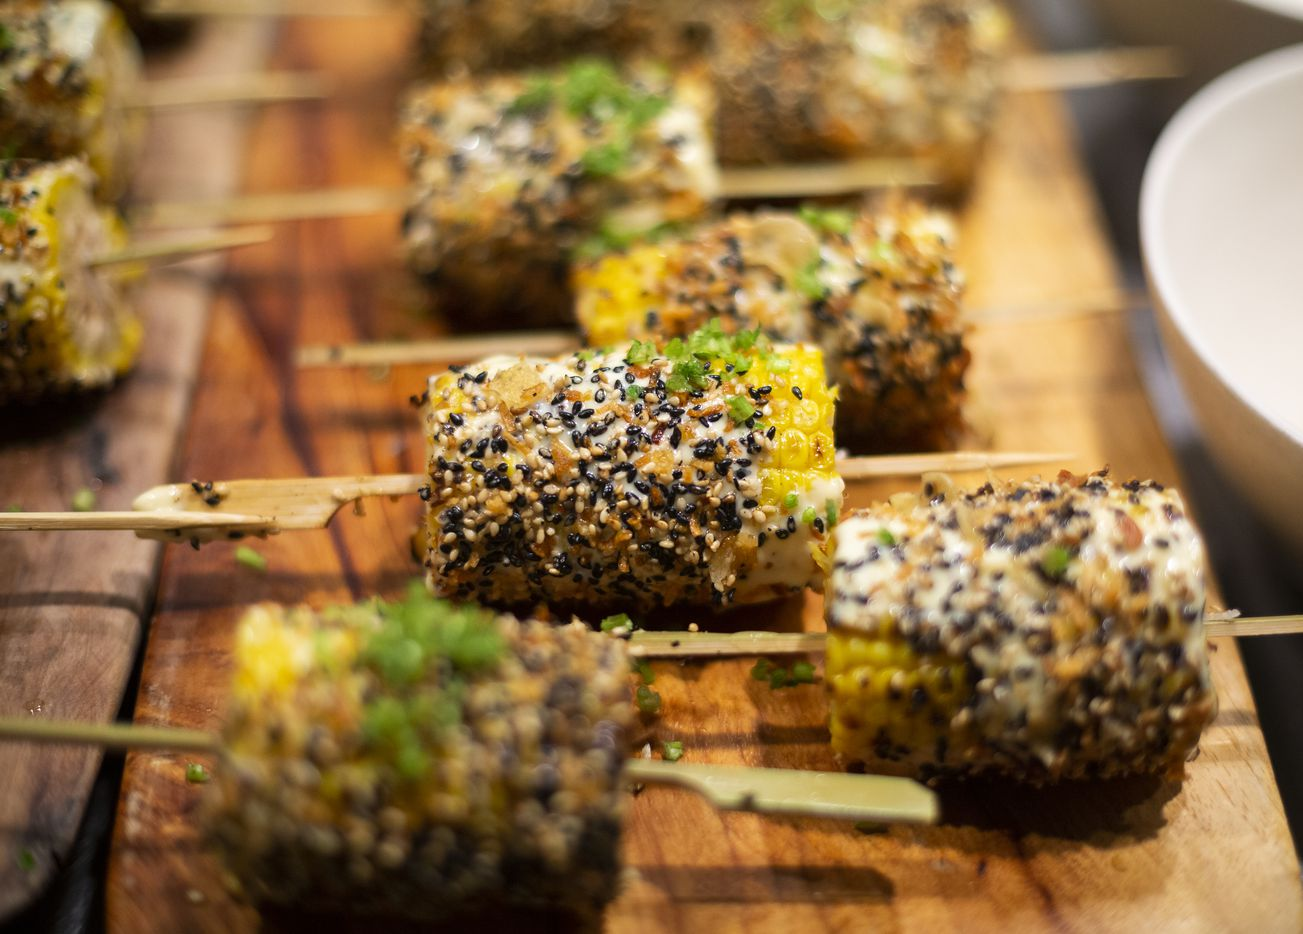 Elotes served as a side during the Thanksgiving dinner at Uchi on Nov. 17, 2019 in Uptown Dallas. Uchi hosted a multi-course dinner with pairings, featuring contemporary Japanese interpretations of traditional Thanksgiving dishes. (Juan Figueroa/ The Dallas Morning News)